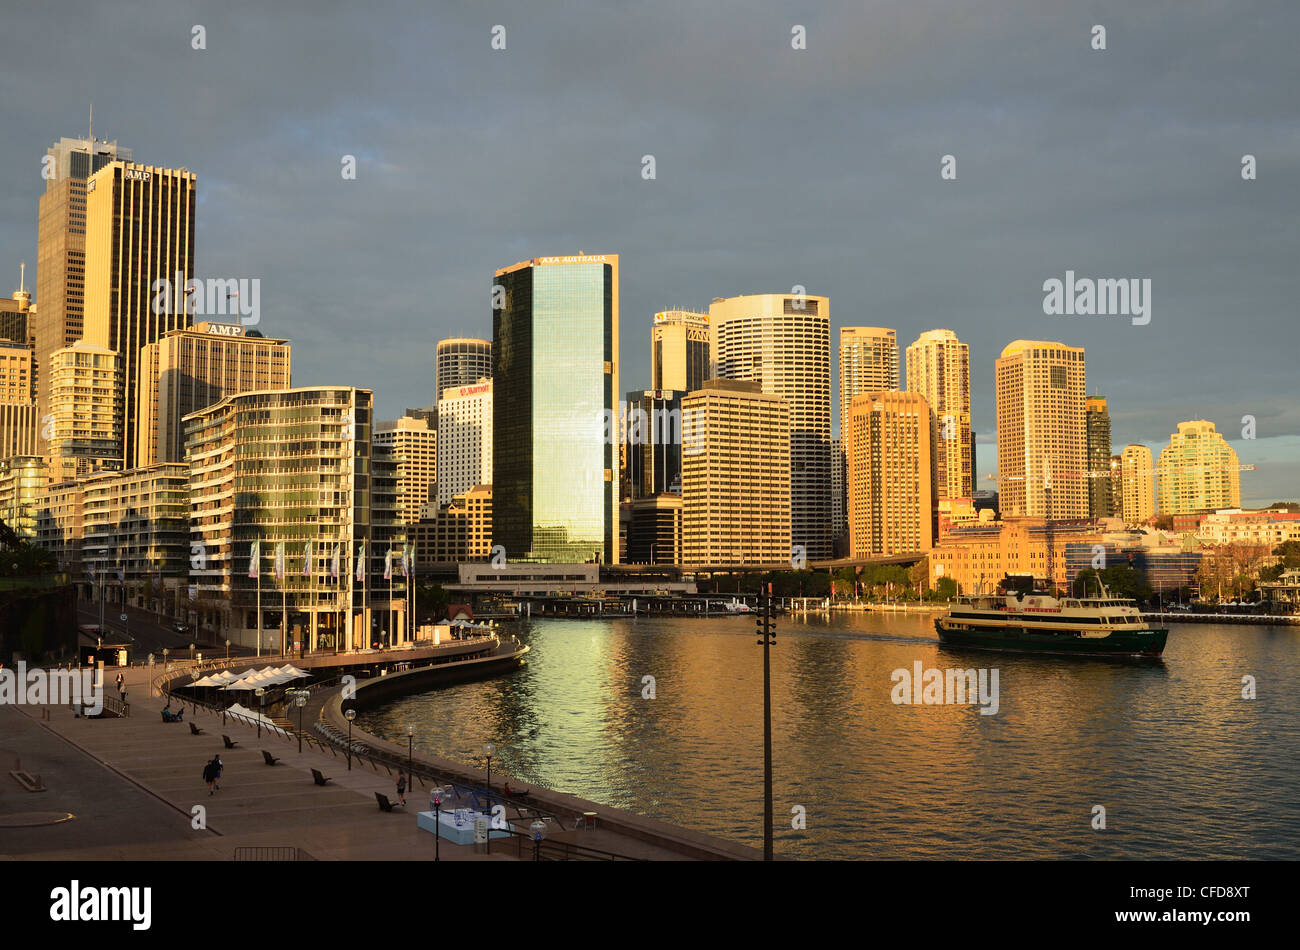 Circular Quay, Sydney Cove and city skyline, Sydney, New South Wales, Australia, Pacific - Stock Image